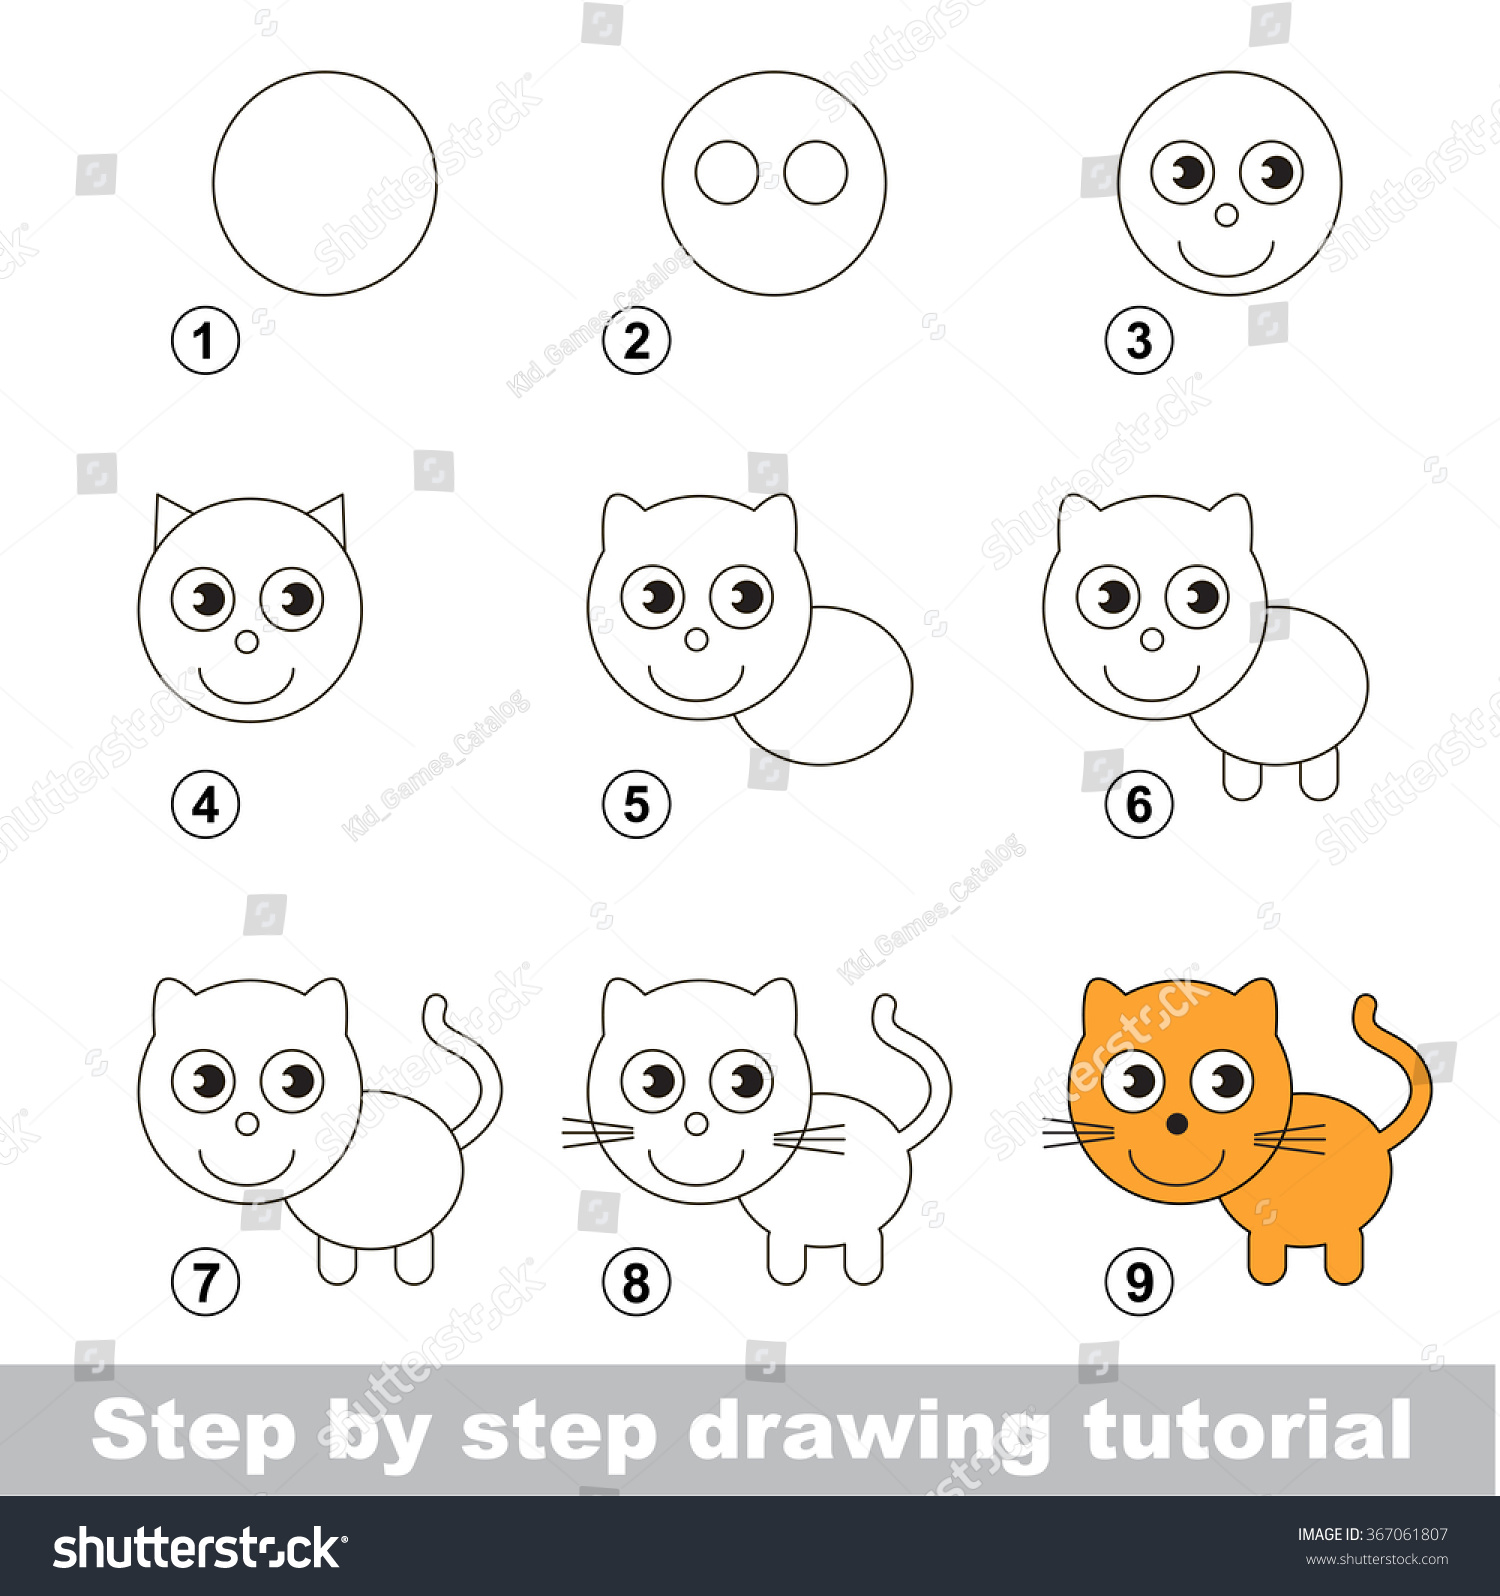 Step By Step Drawing Tutorial Visual Game For Kids How To Draw A Small